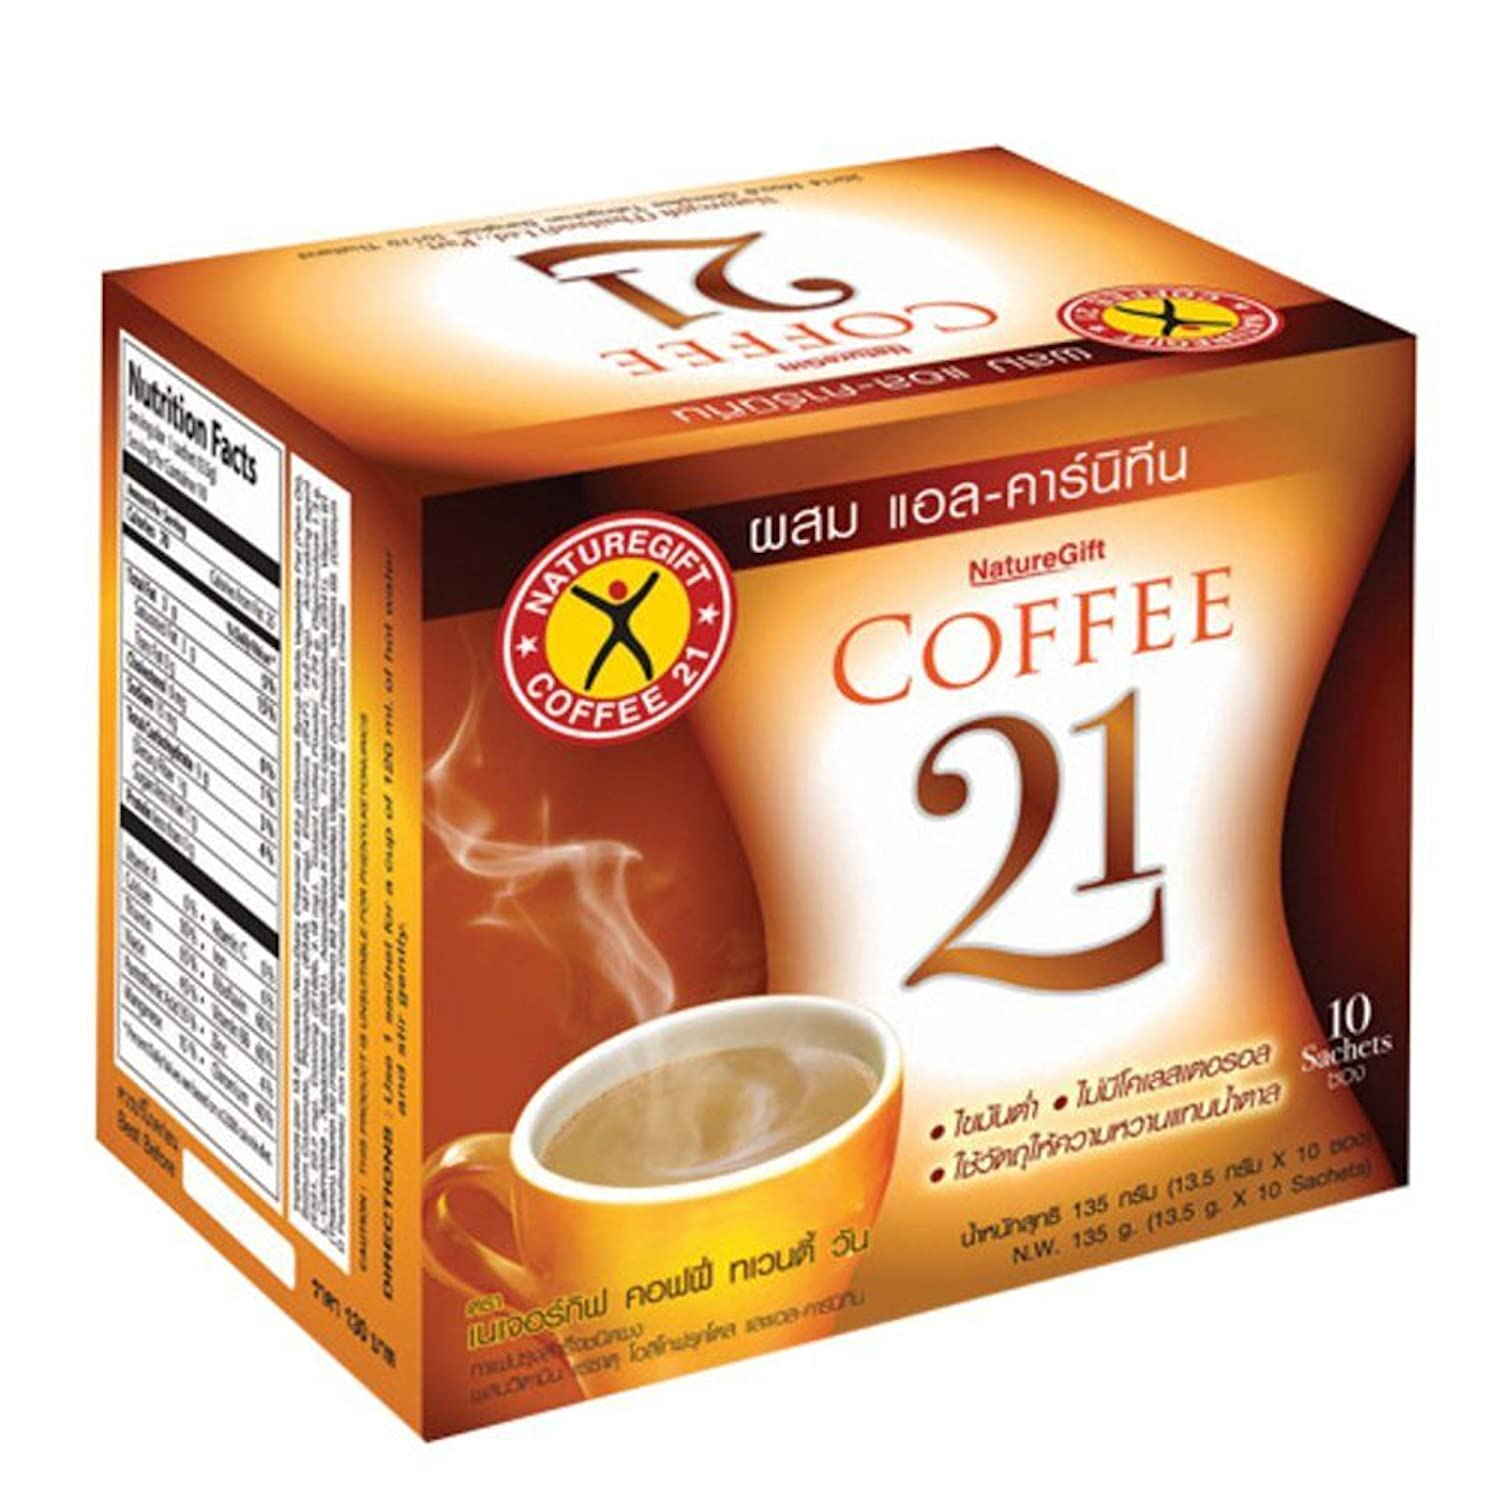 Image result for naturegift coffee 21